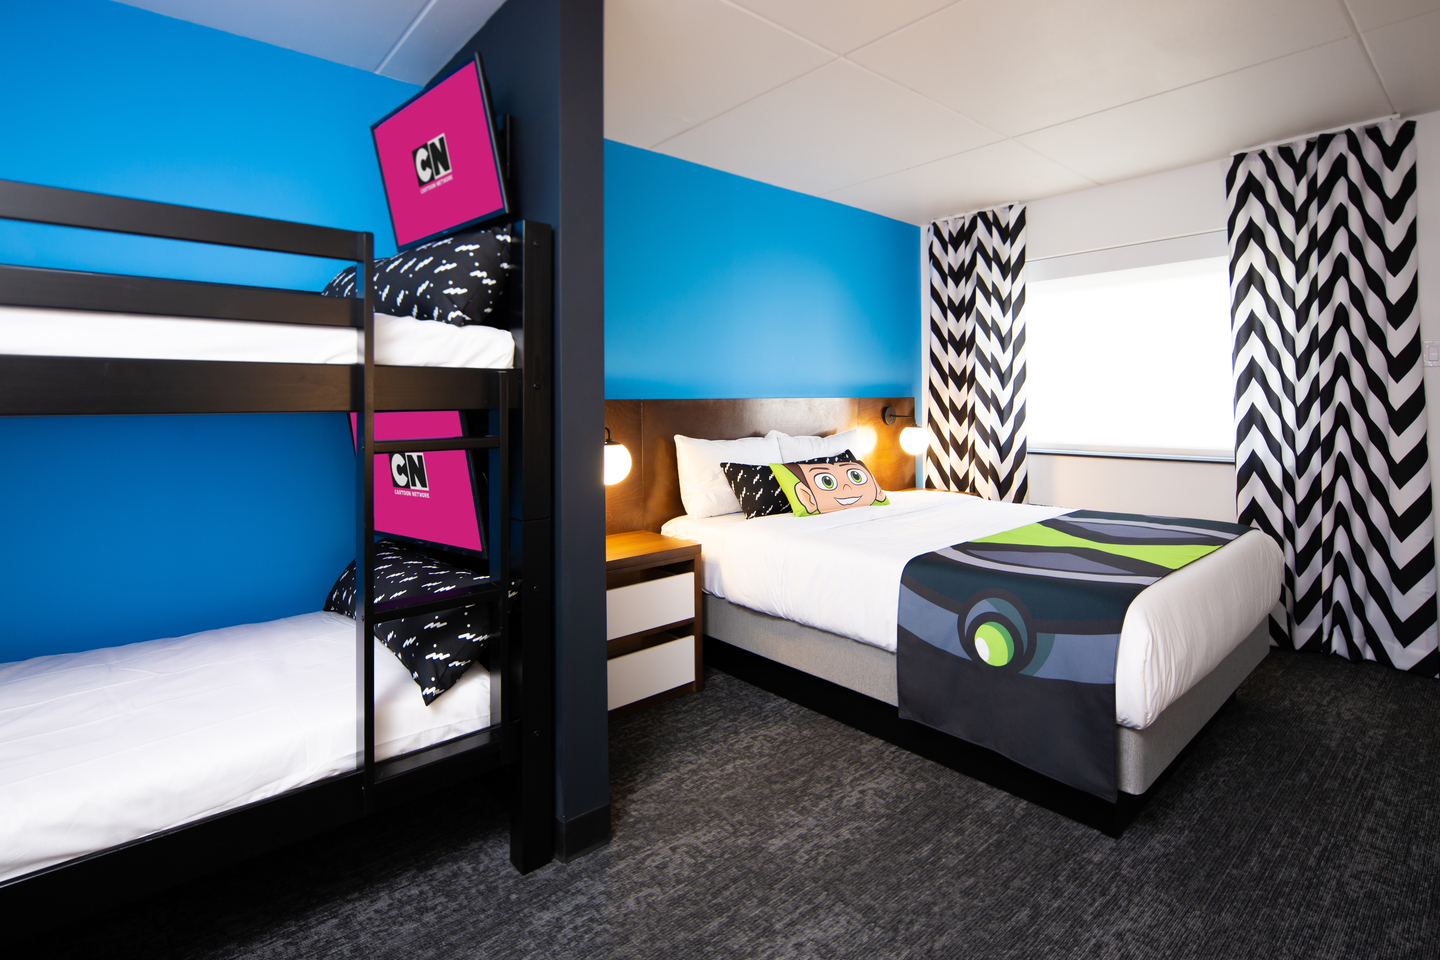 Ben 10 show themed king bed and bunk bed room